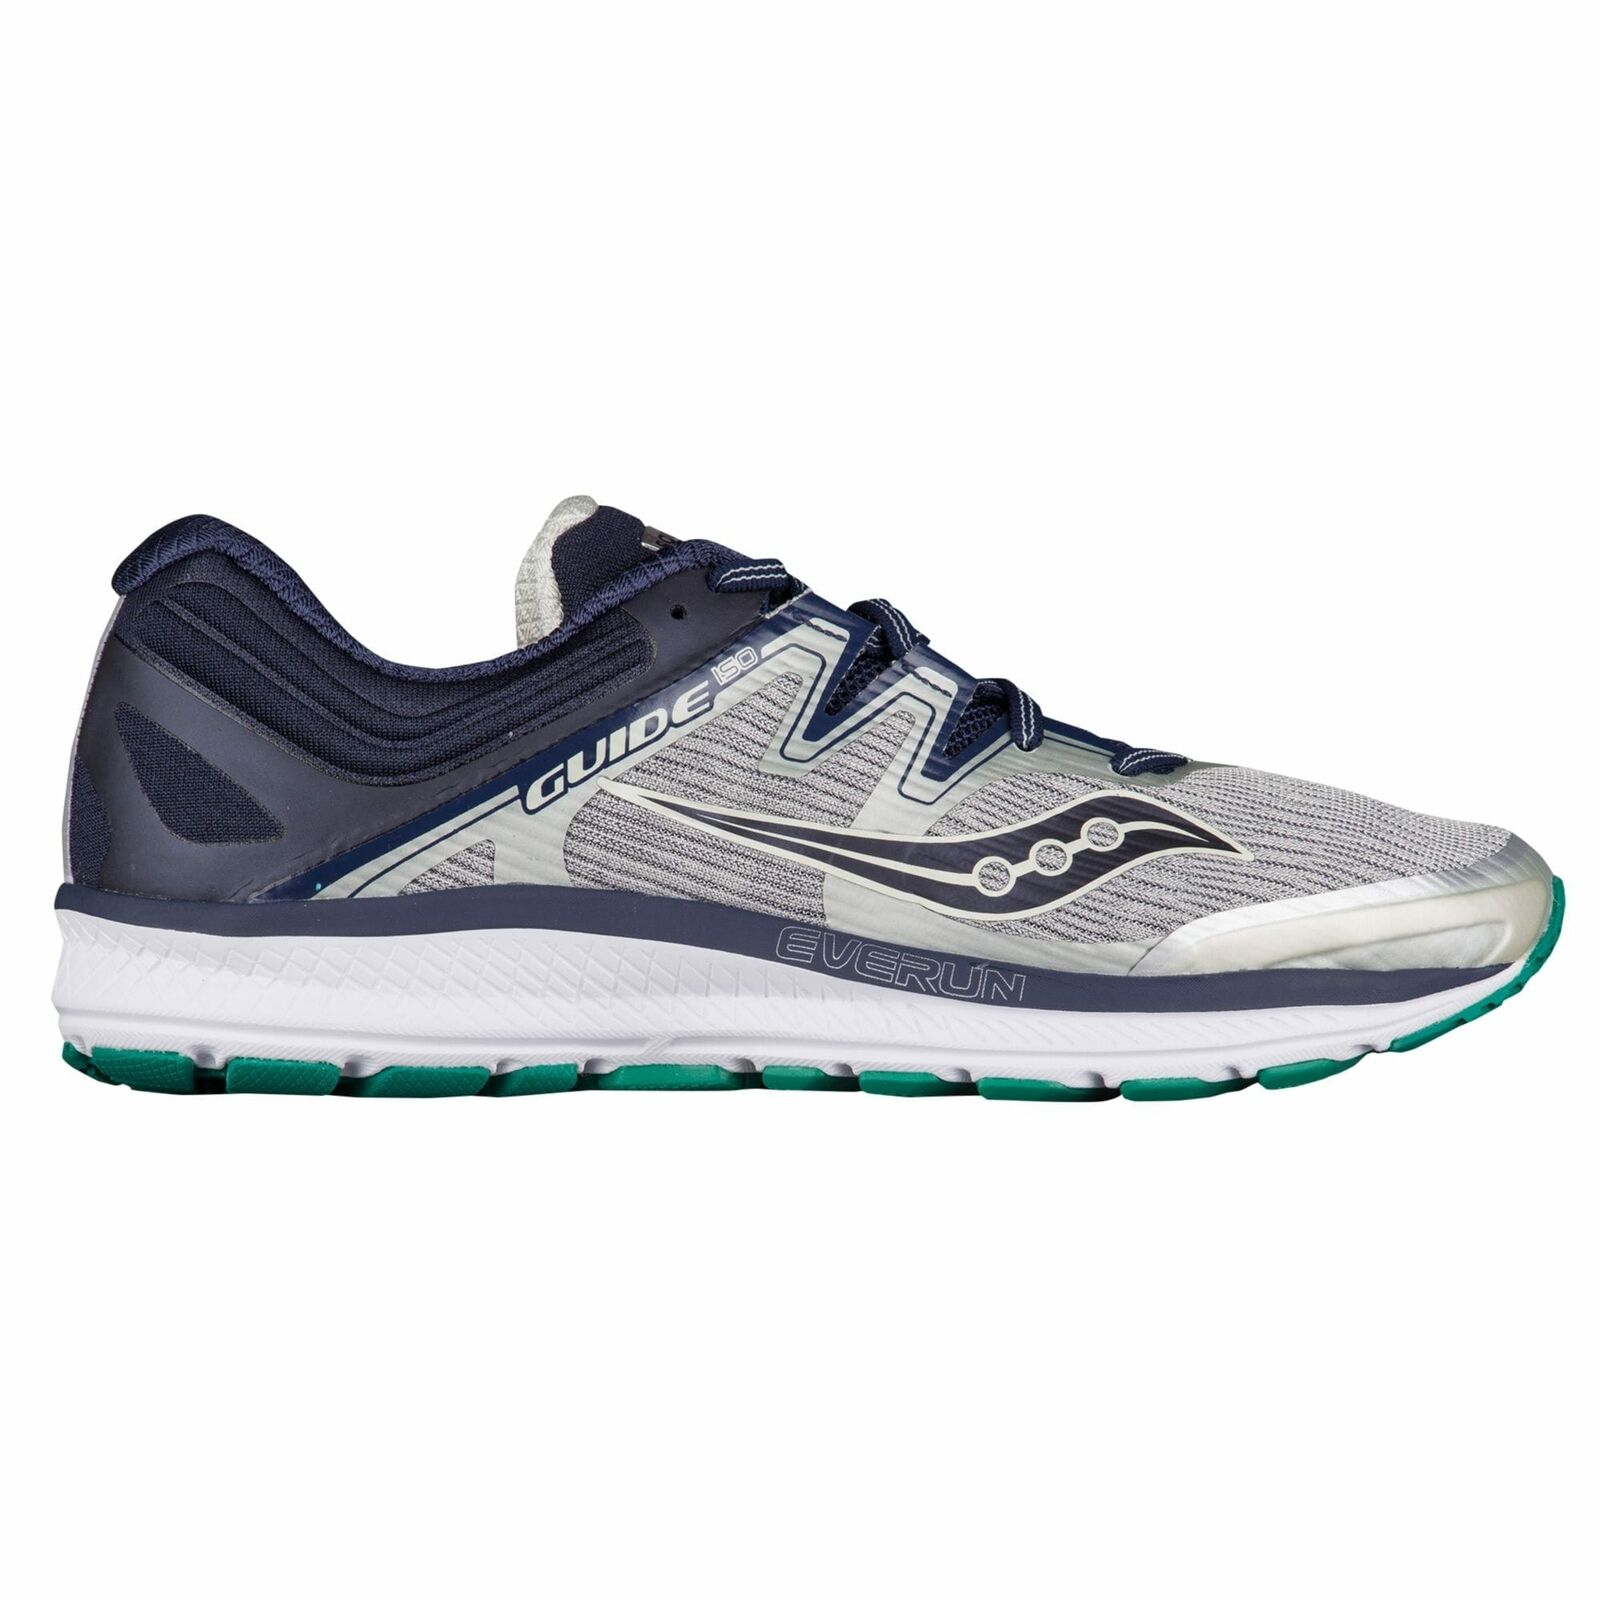 Saucony Guide ISO homme gris bleu marine 204151